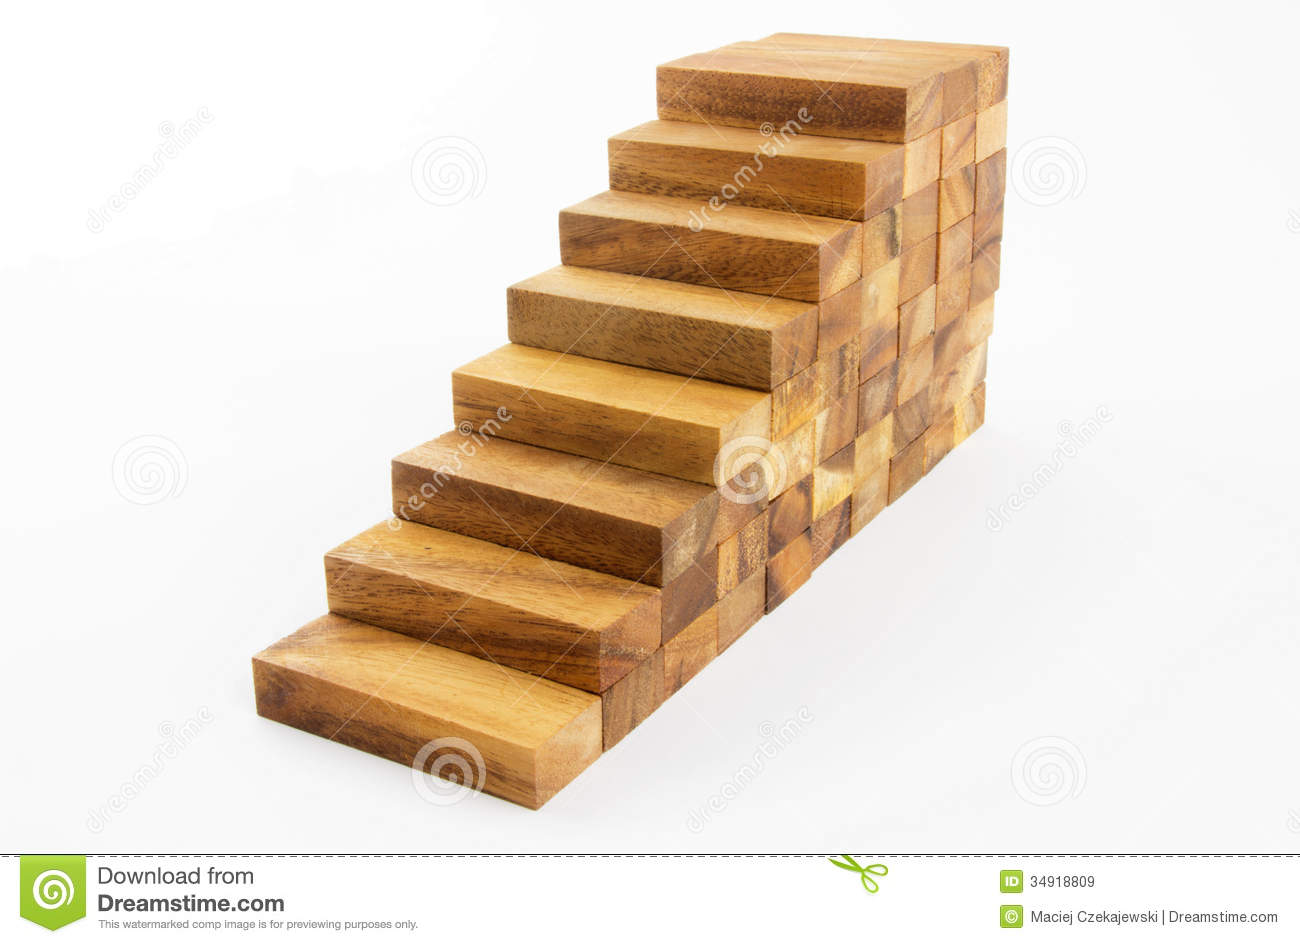 fortnite how to build pyramid stairs